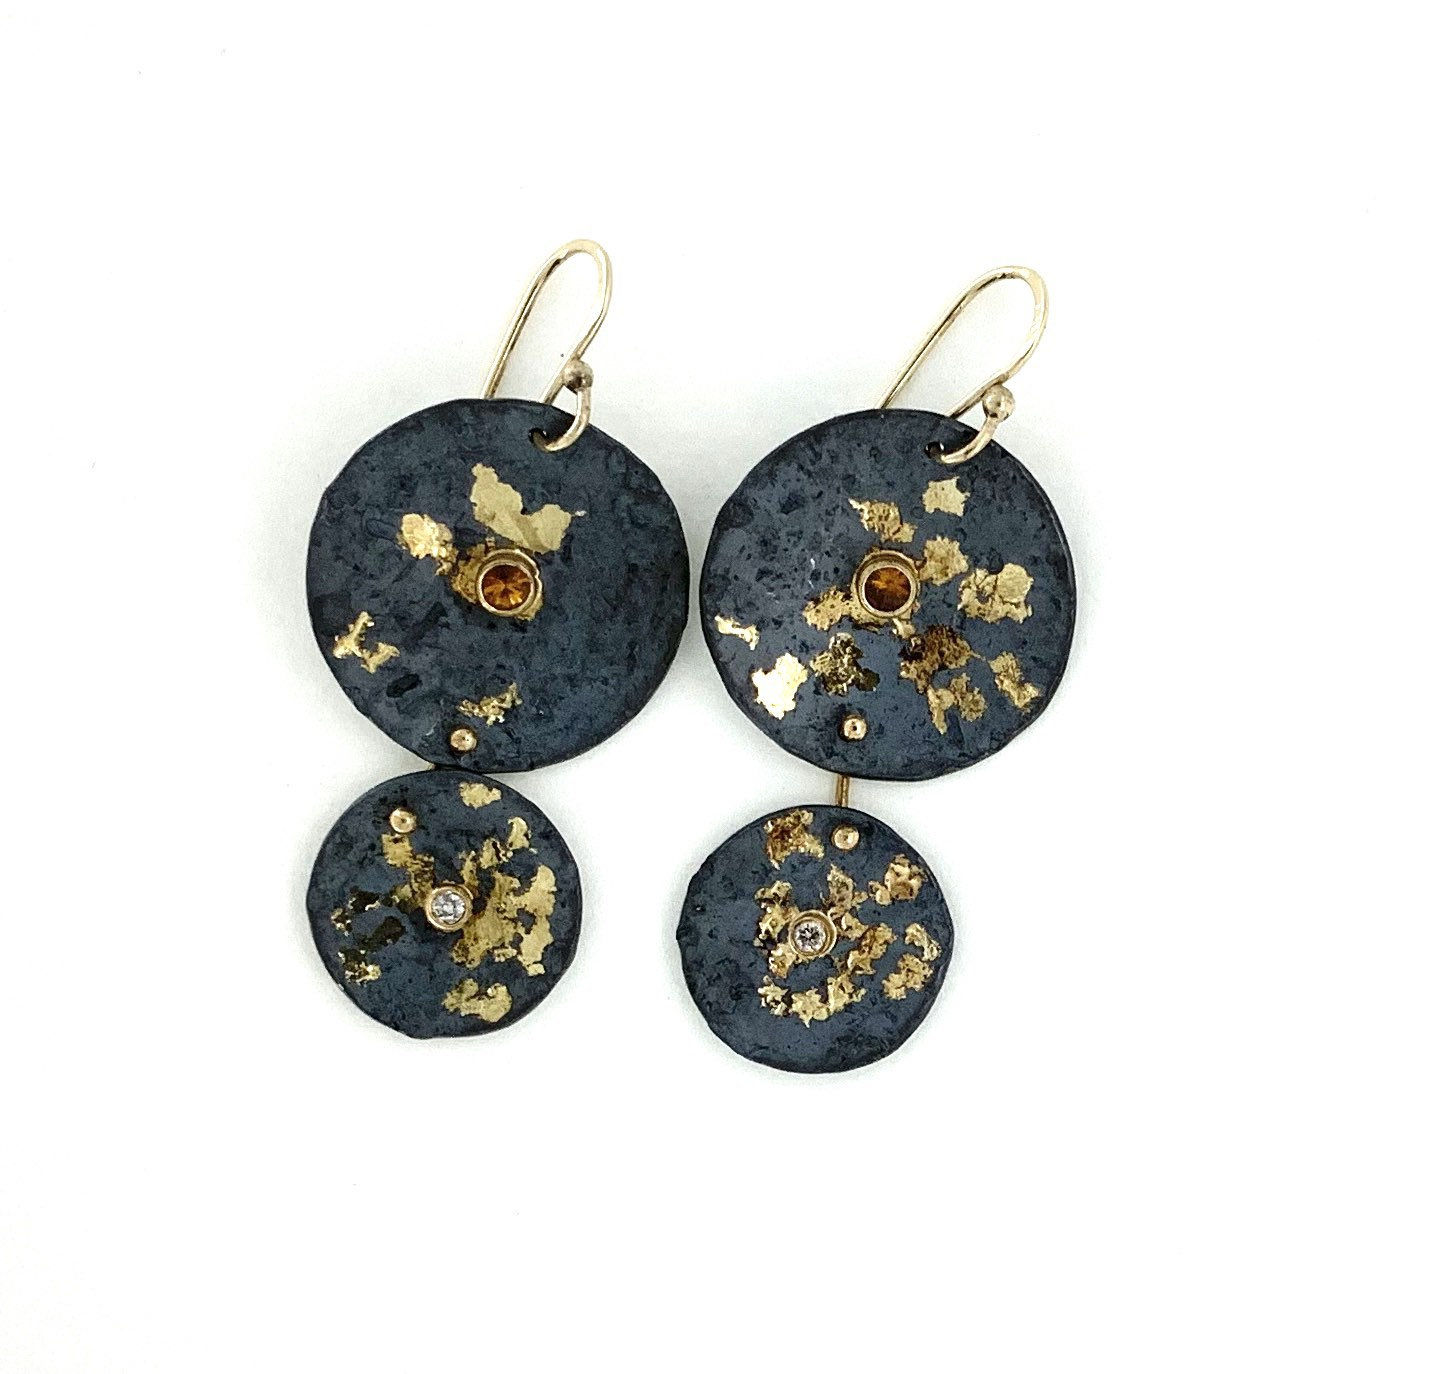 Double rondel earrings